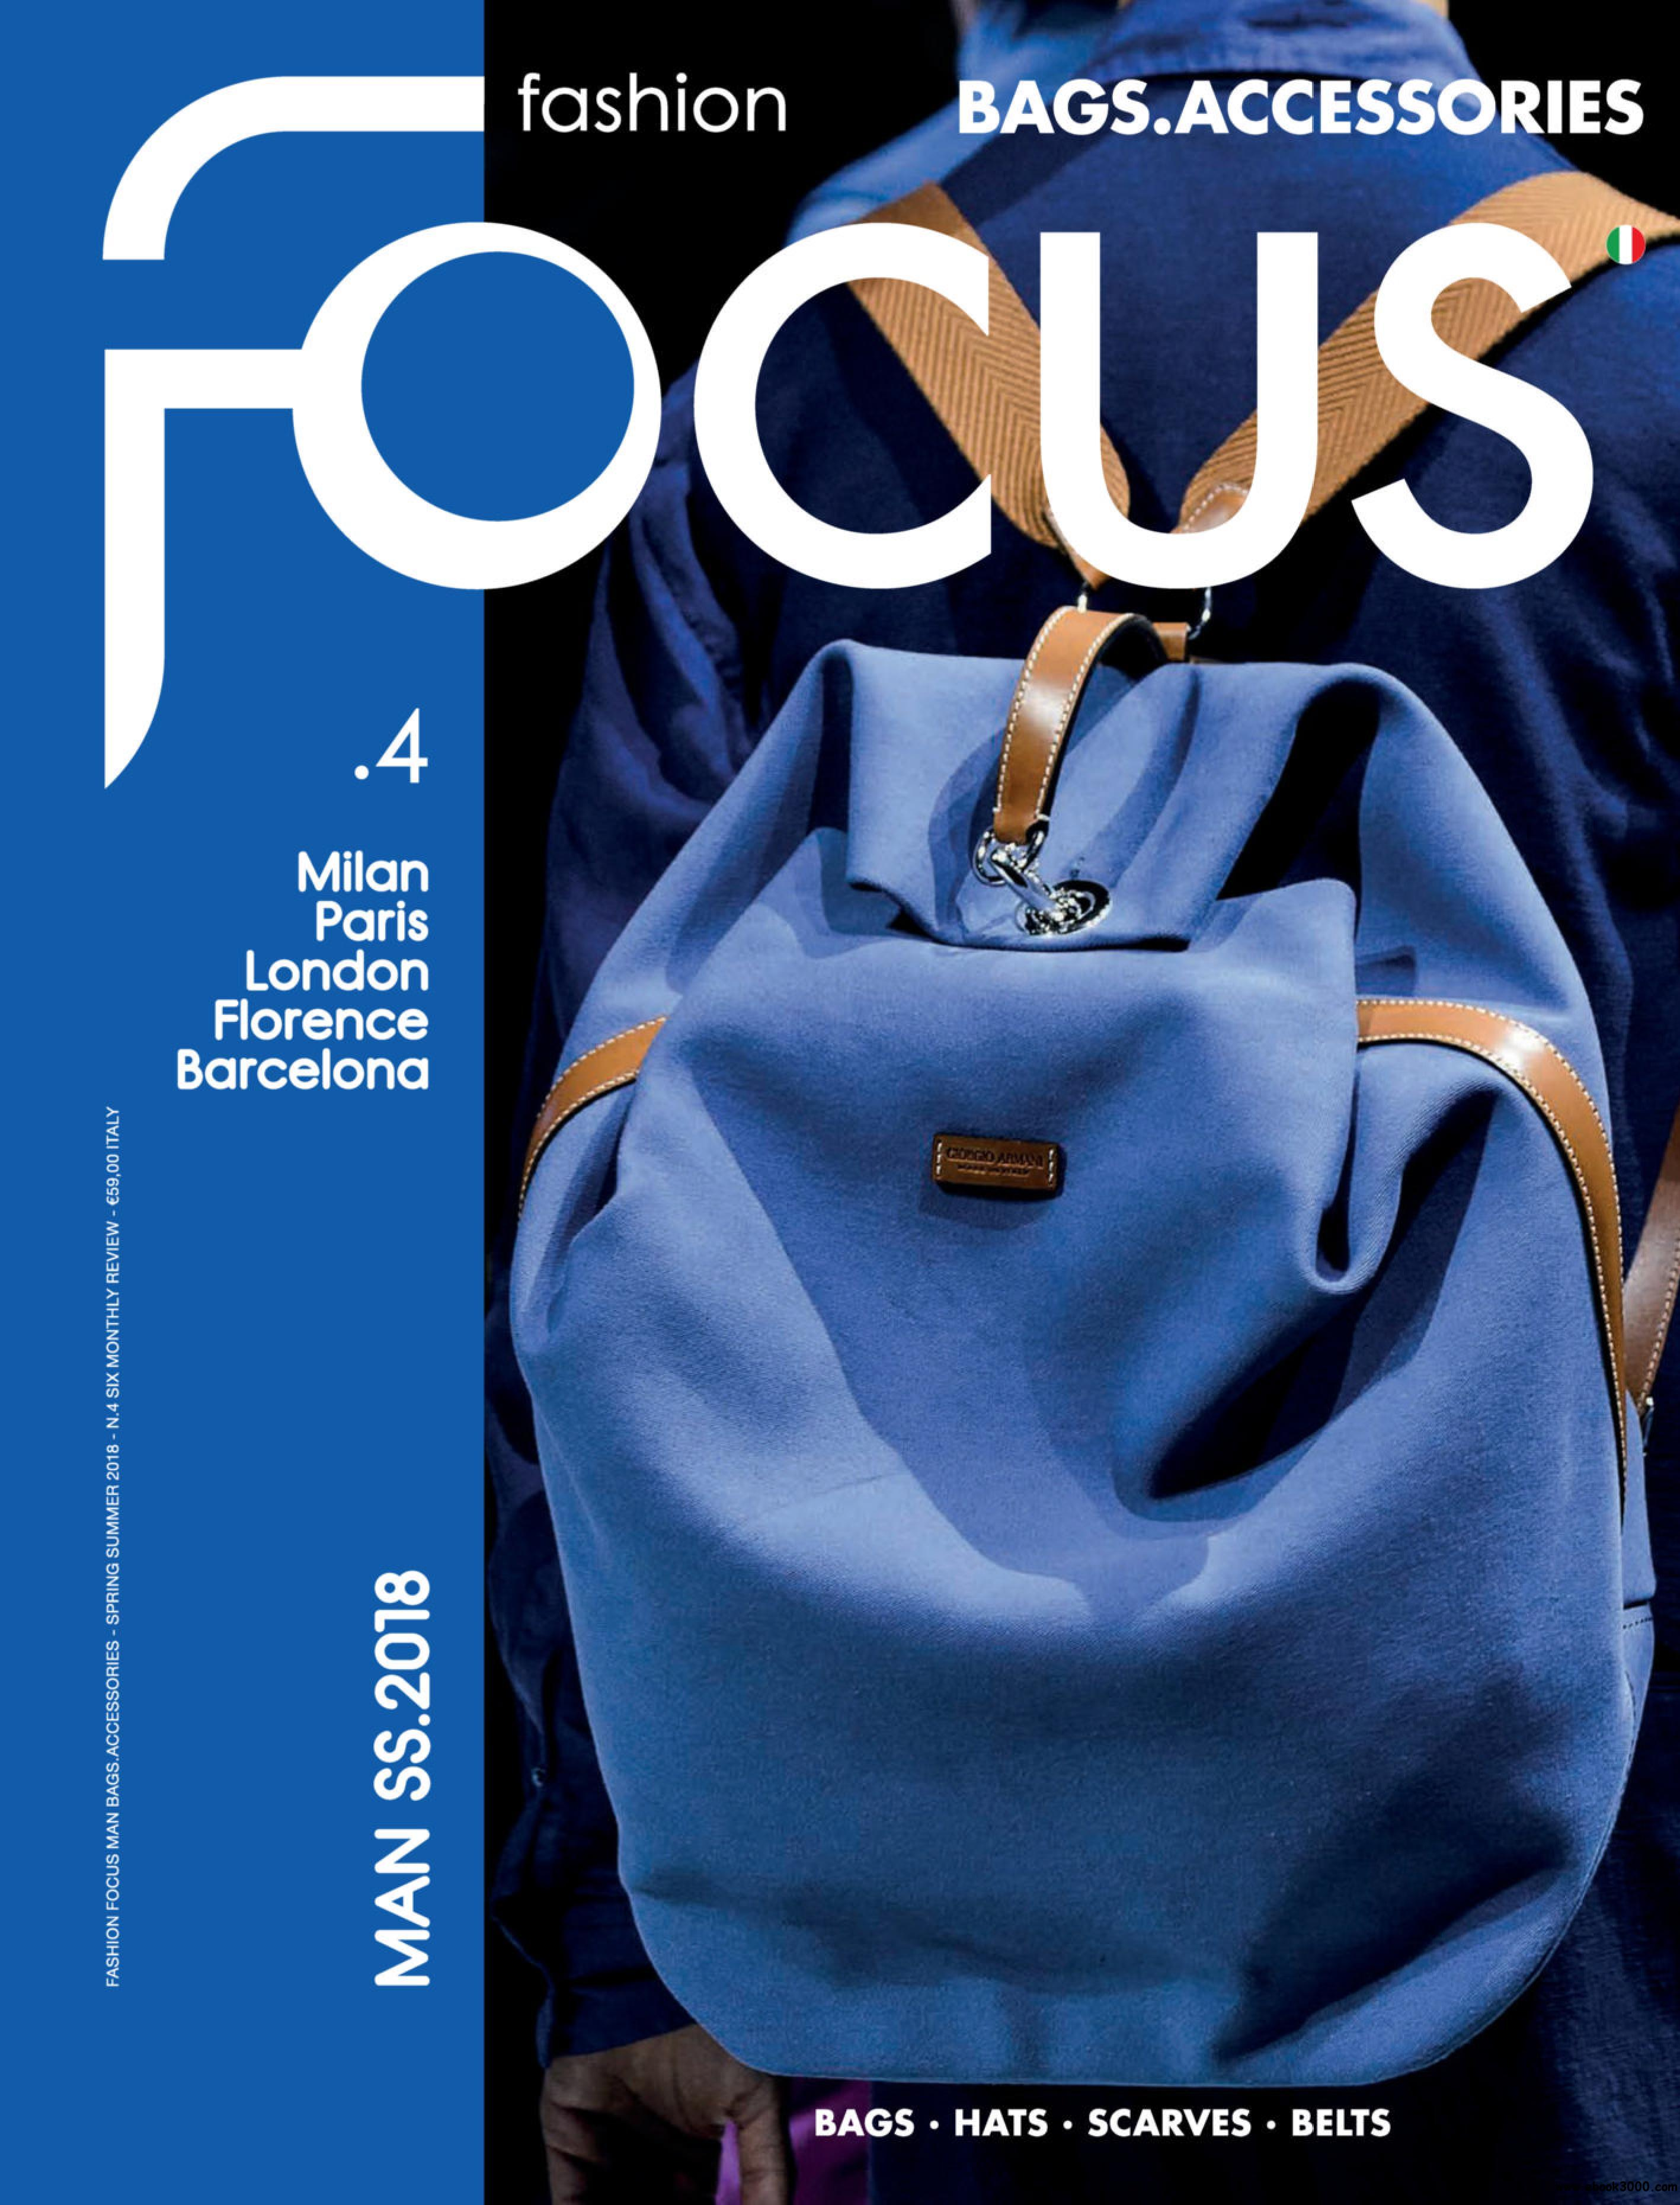 ede3f0d3c28a Fashion Focus Man Bags.Accessories - March 2018 - Free eBooks Download